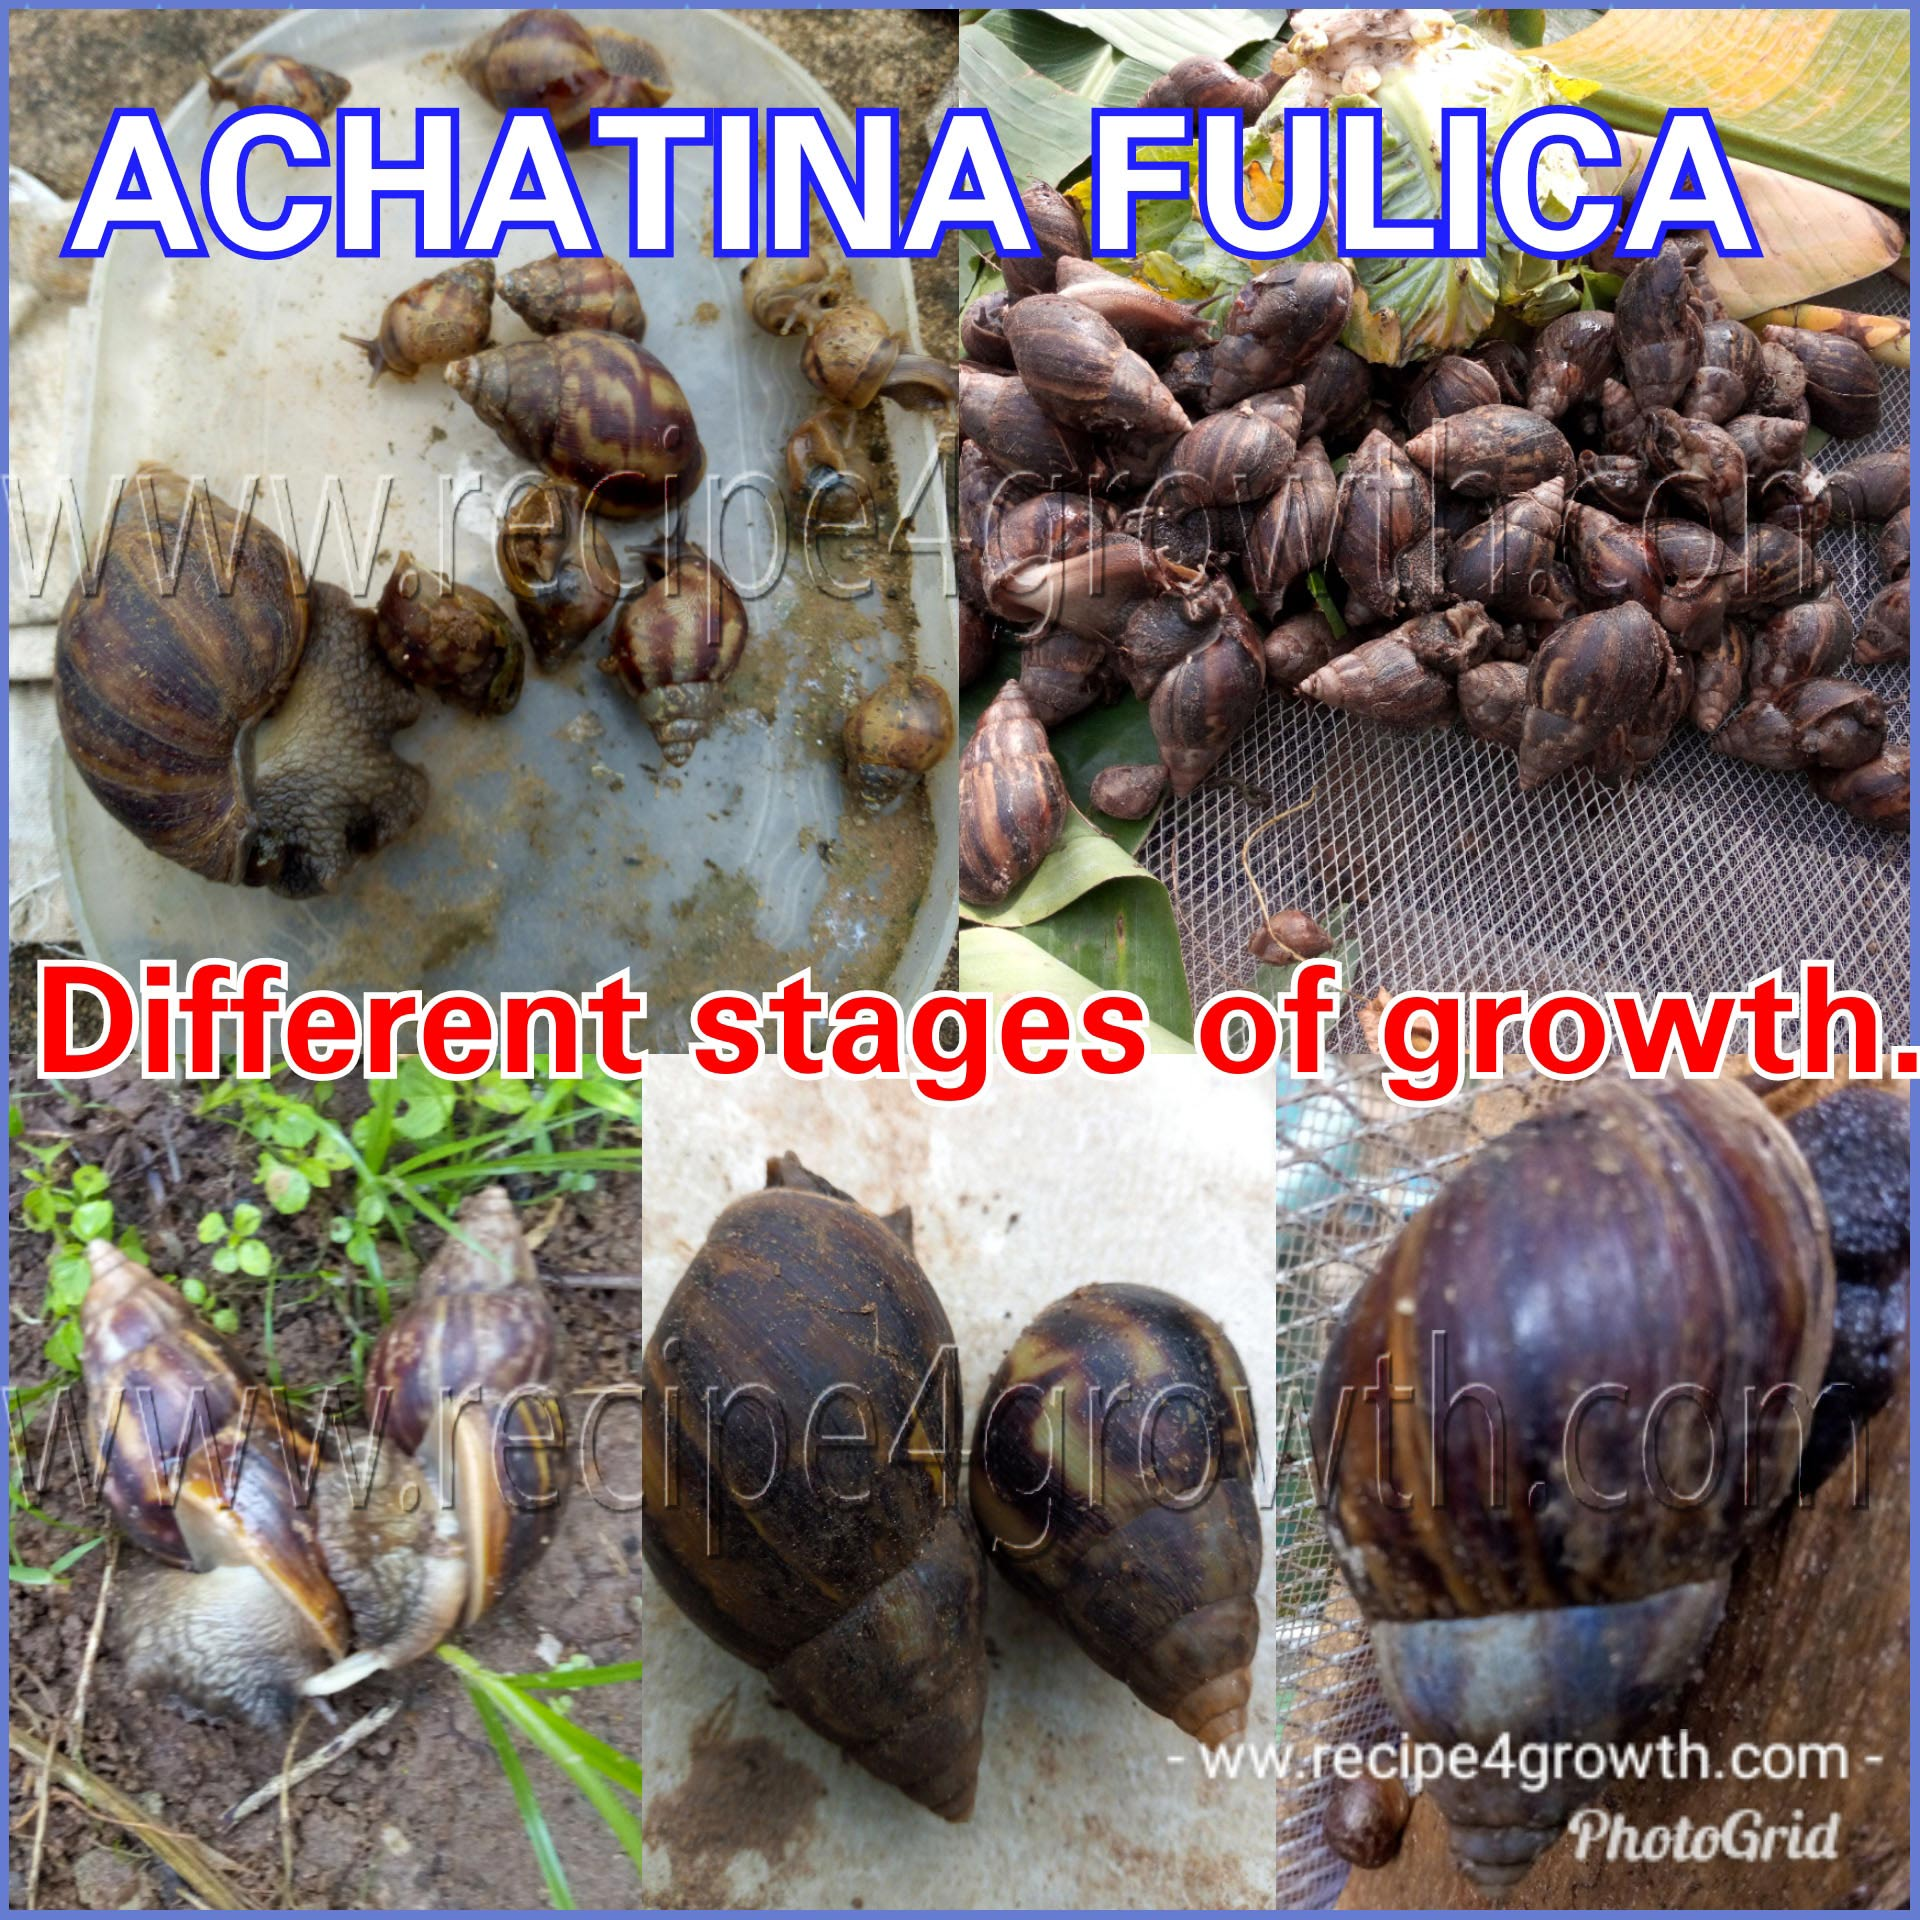 Achatina Fulica growth stages.